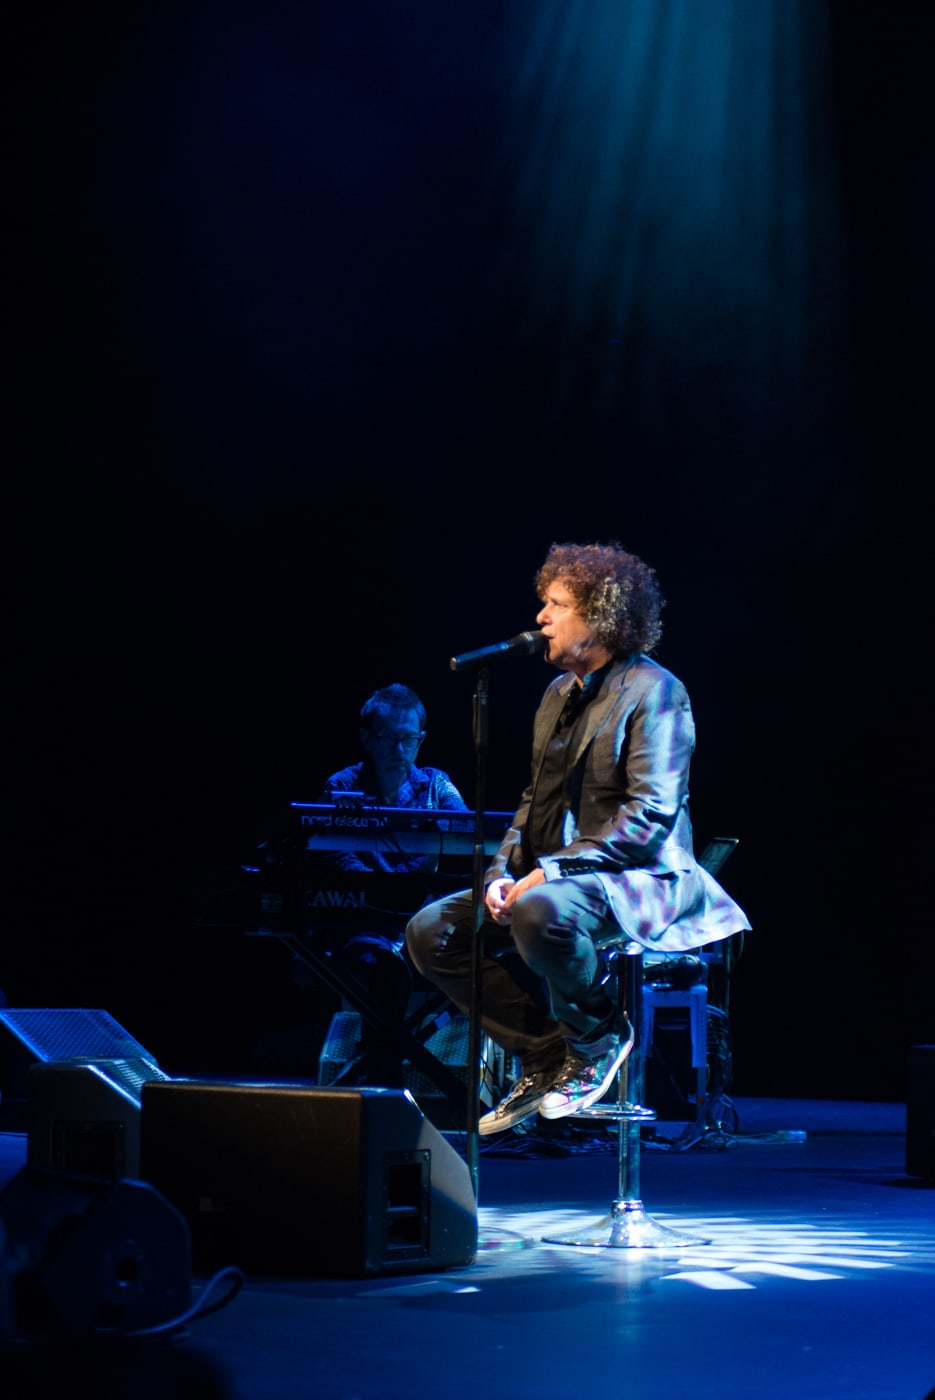 Leo Sayer at Bord Gais Energy Theatre by Sean Smyth (16-10-15) (79 of 129)